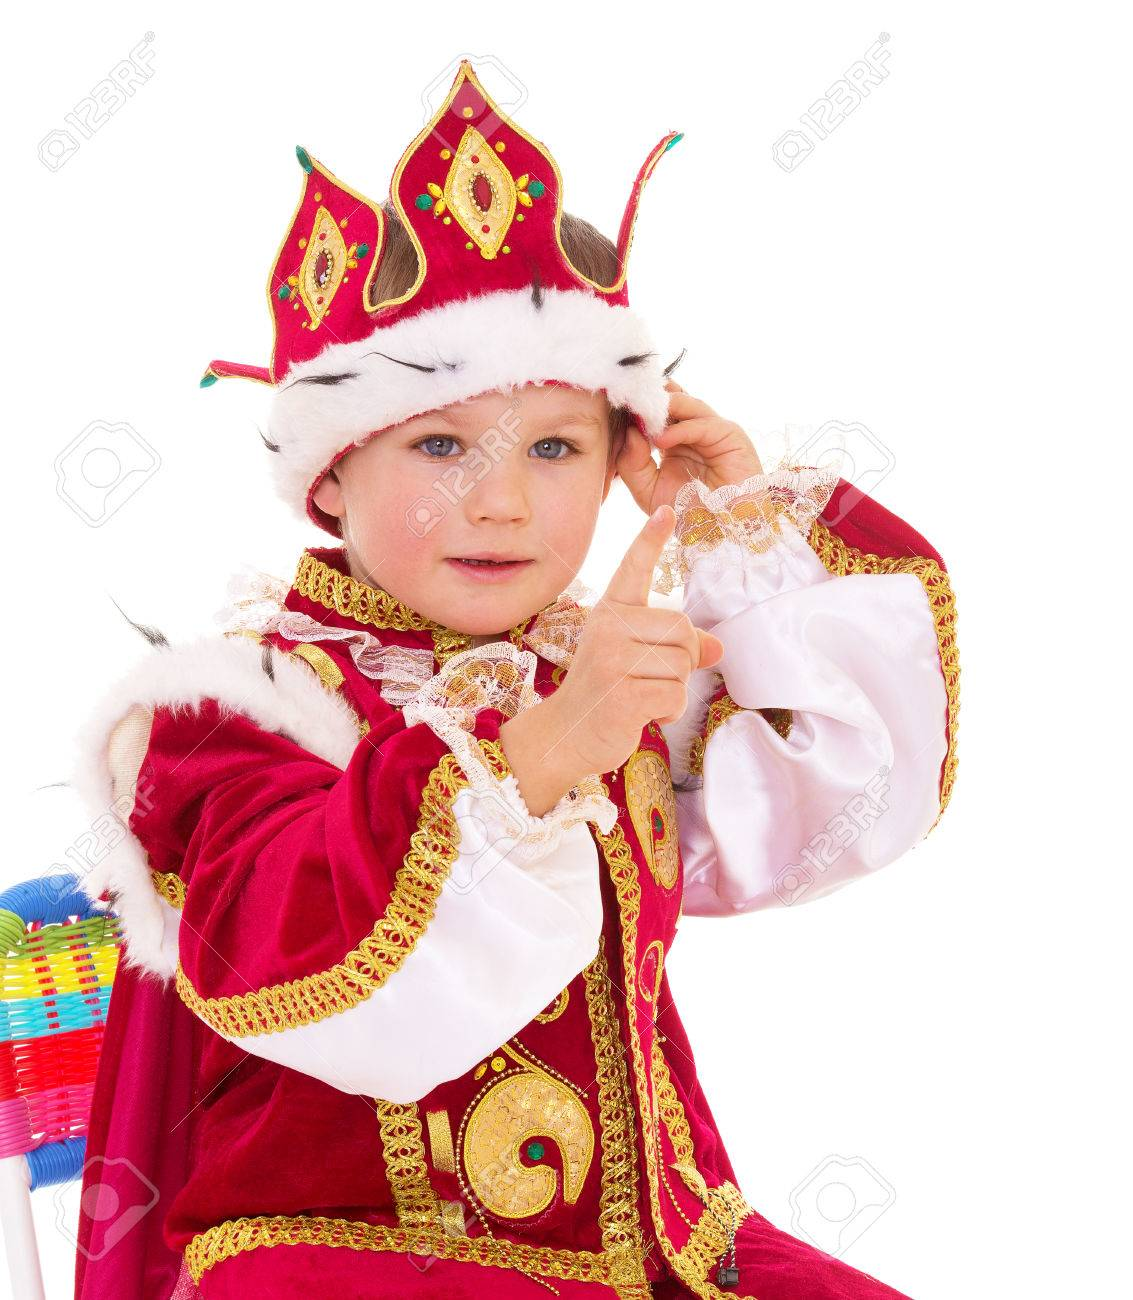 The little boy dressed as a king, isolated on white background - 28183557